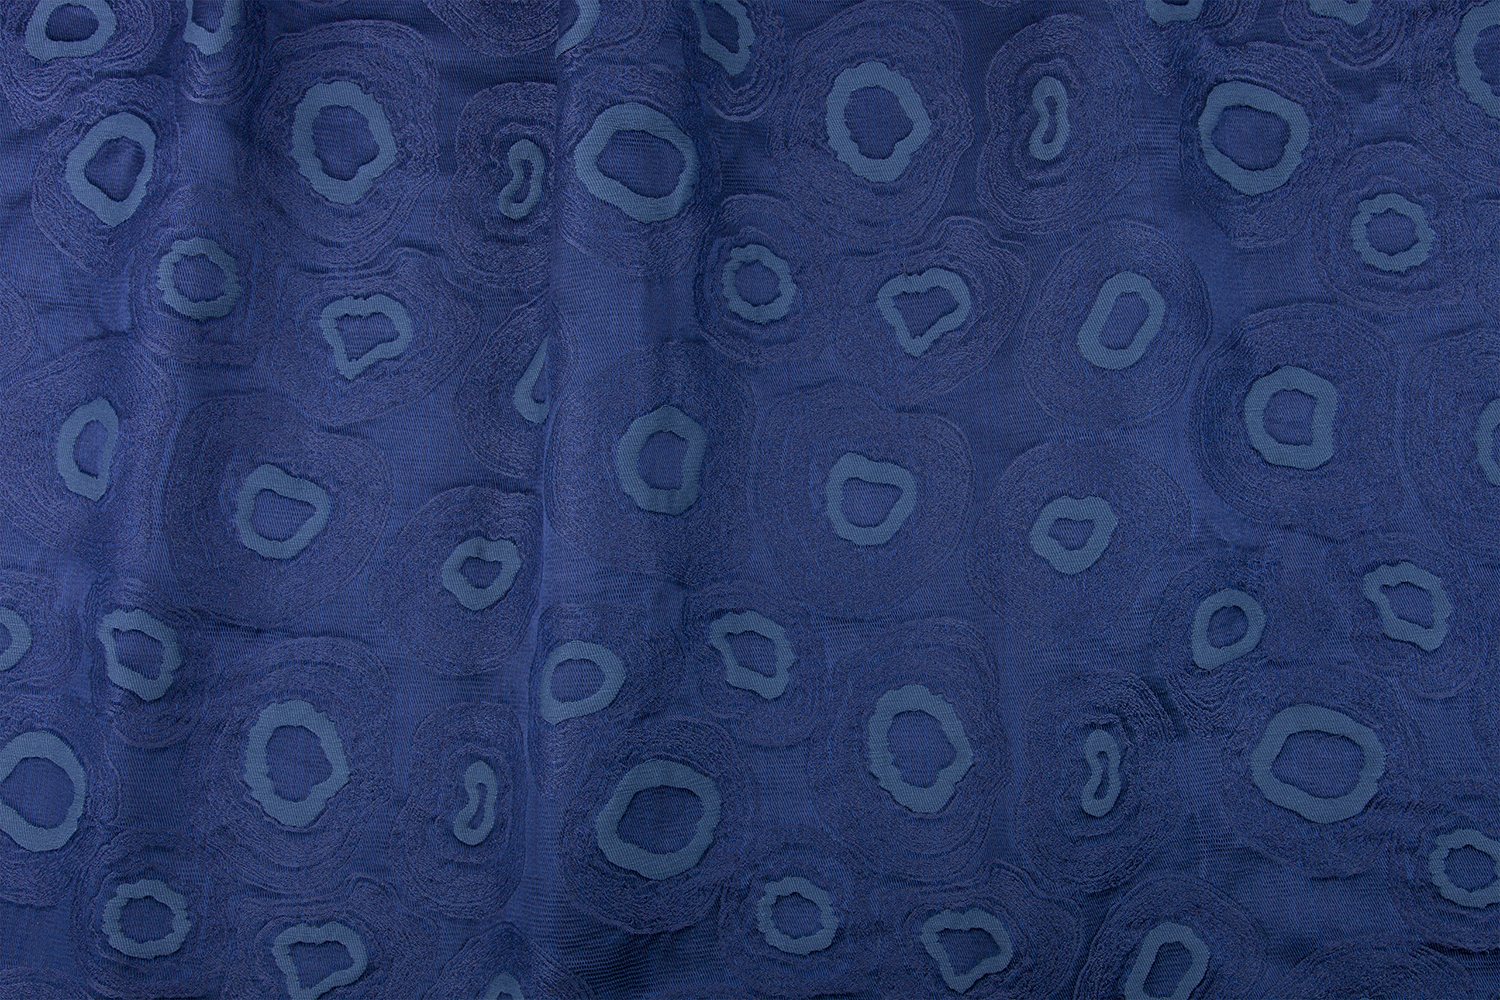 Mineral design, sustainable jacquard woven fabric